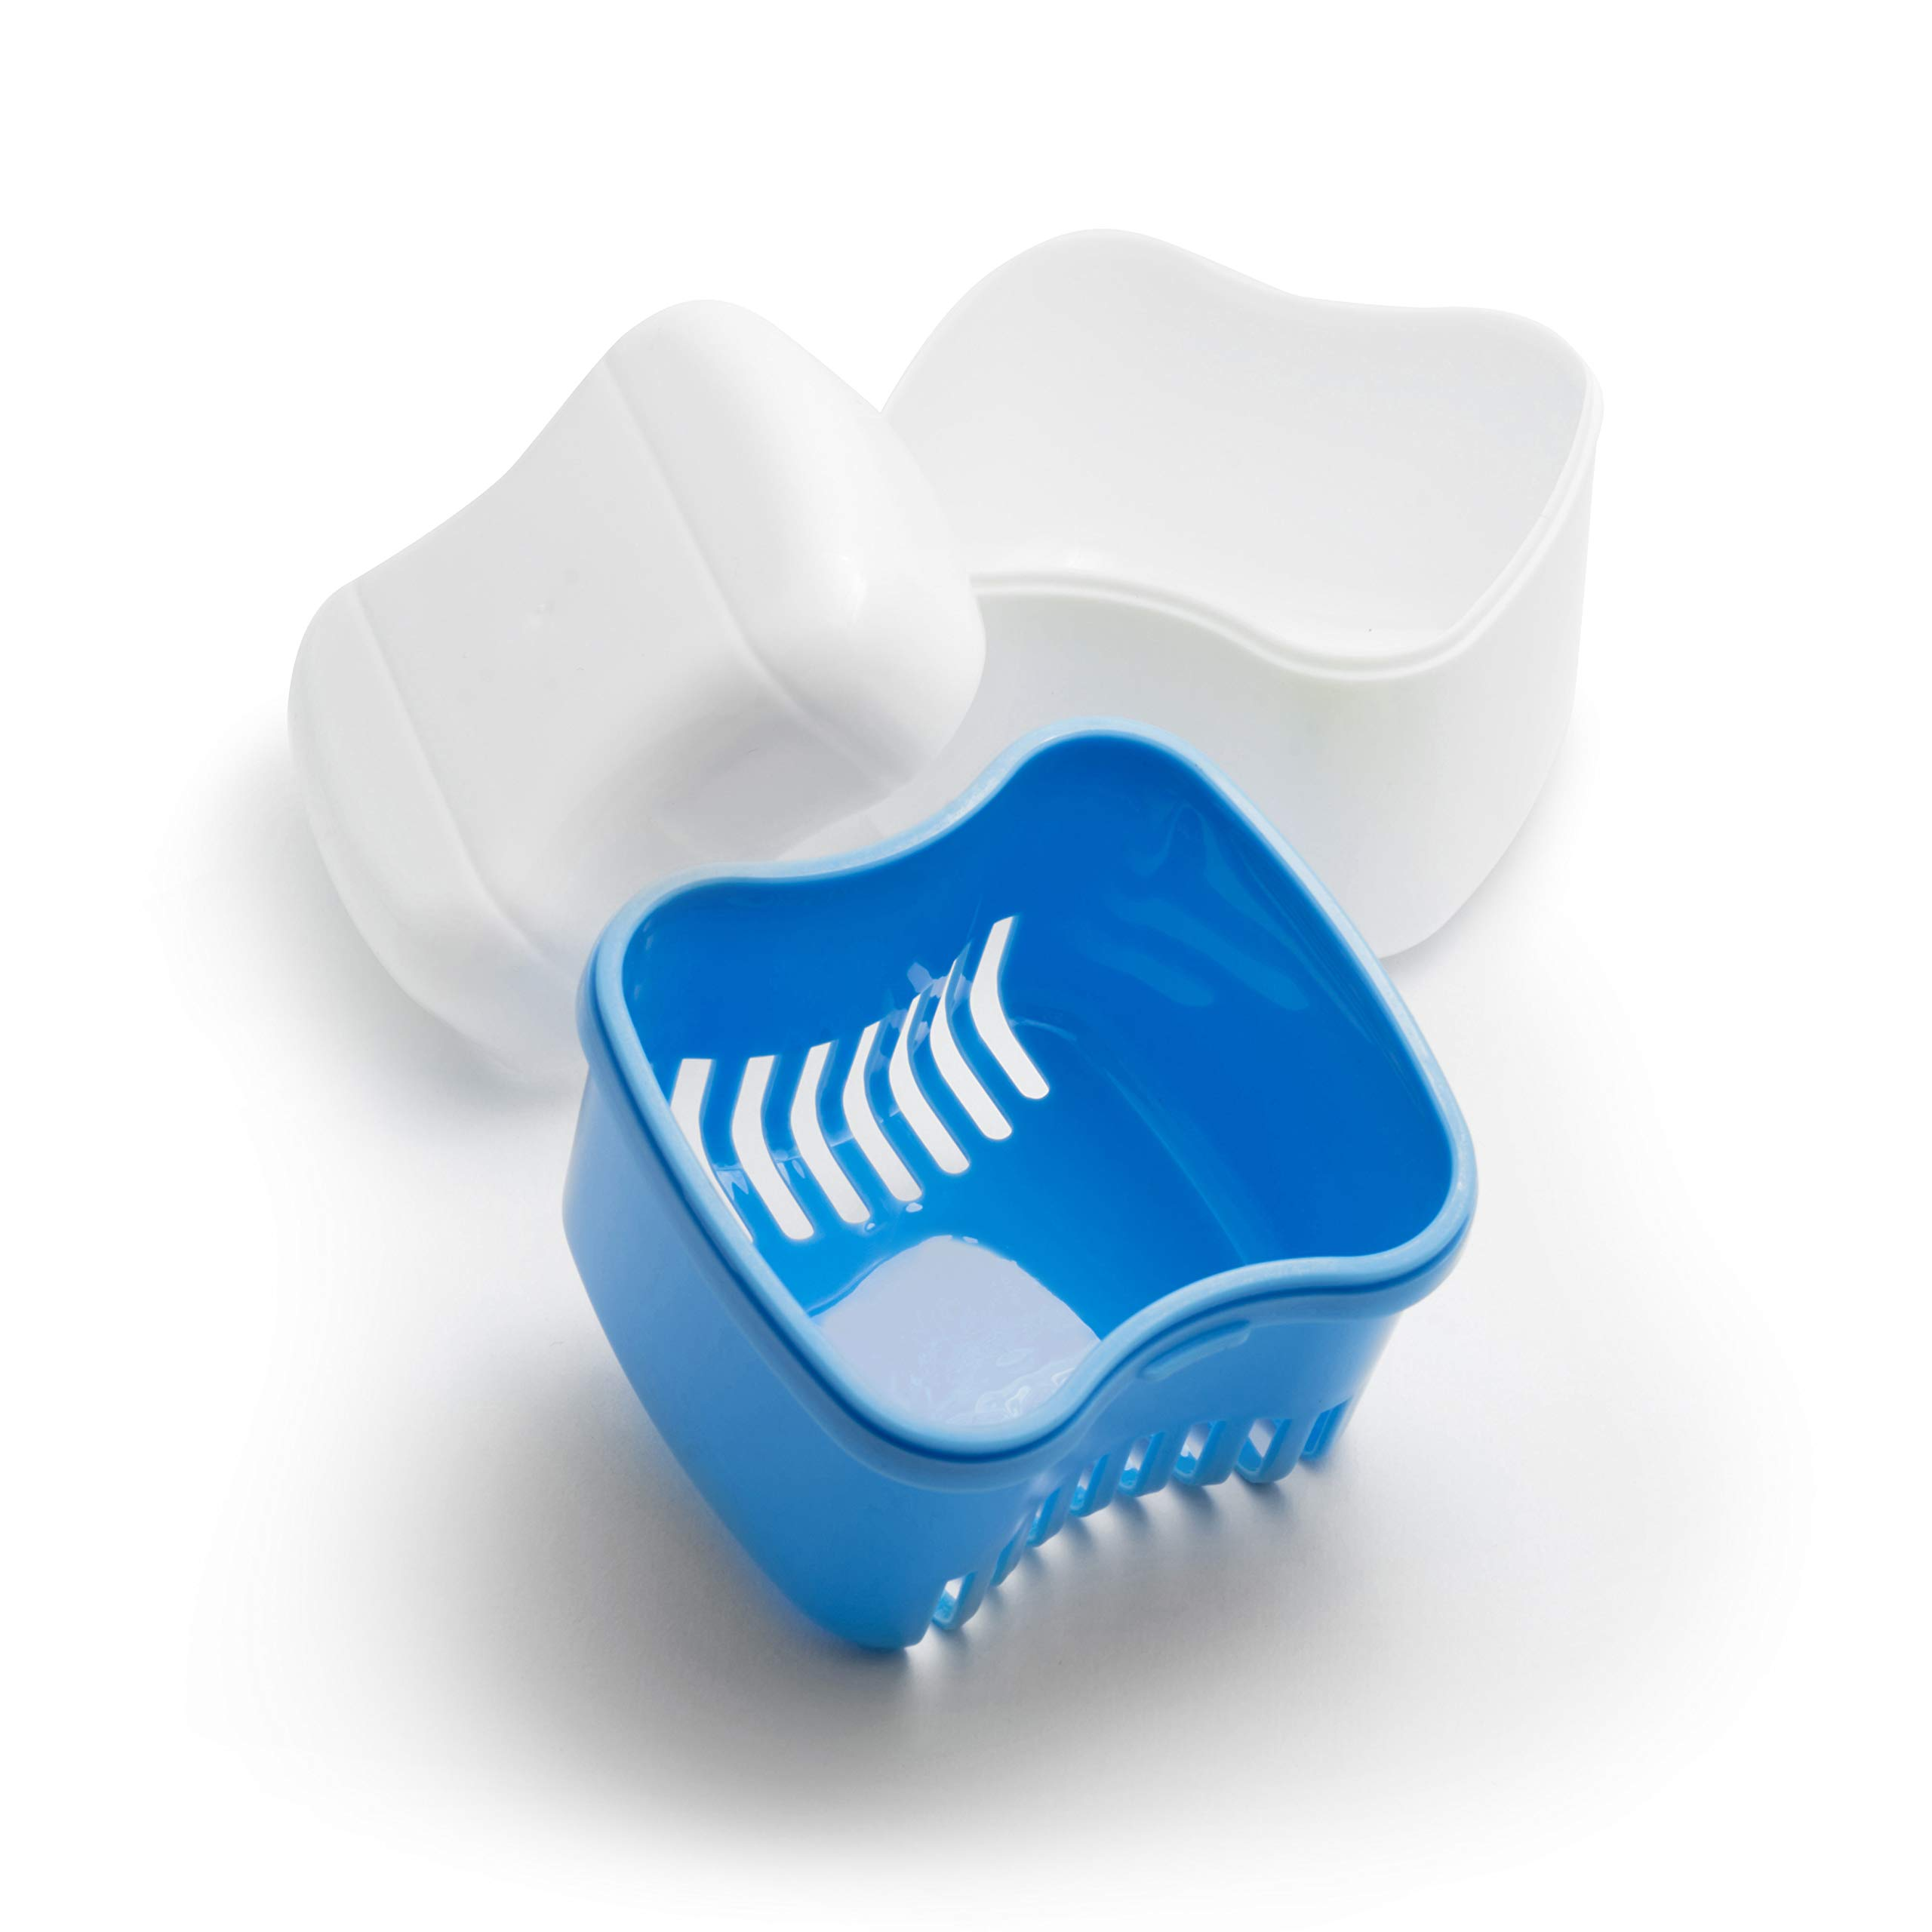 Retainer-Denture Bath-Dental Appliance Cleaning Case Size Standard with Easy Grip – Color Sky Blue